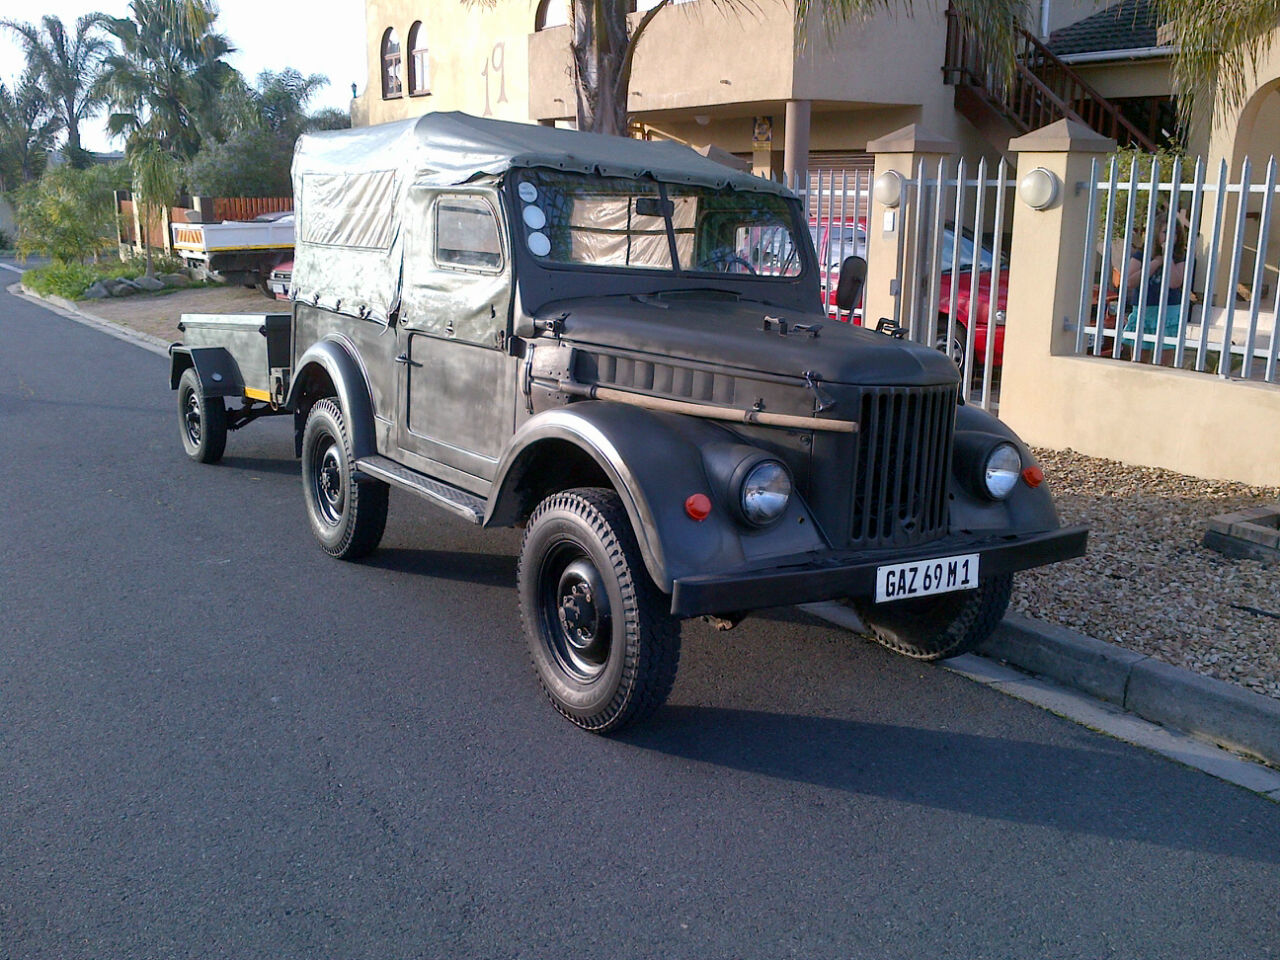 1950 Willys Jeep >> Ugly Ducklings | Cars and vehicles for movies and photoshoots